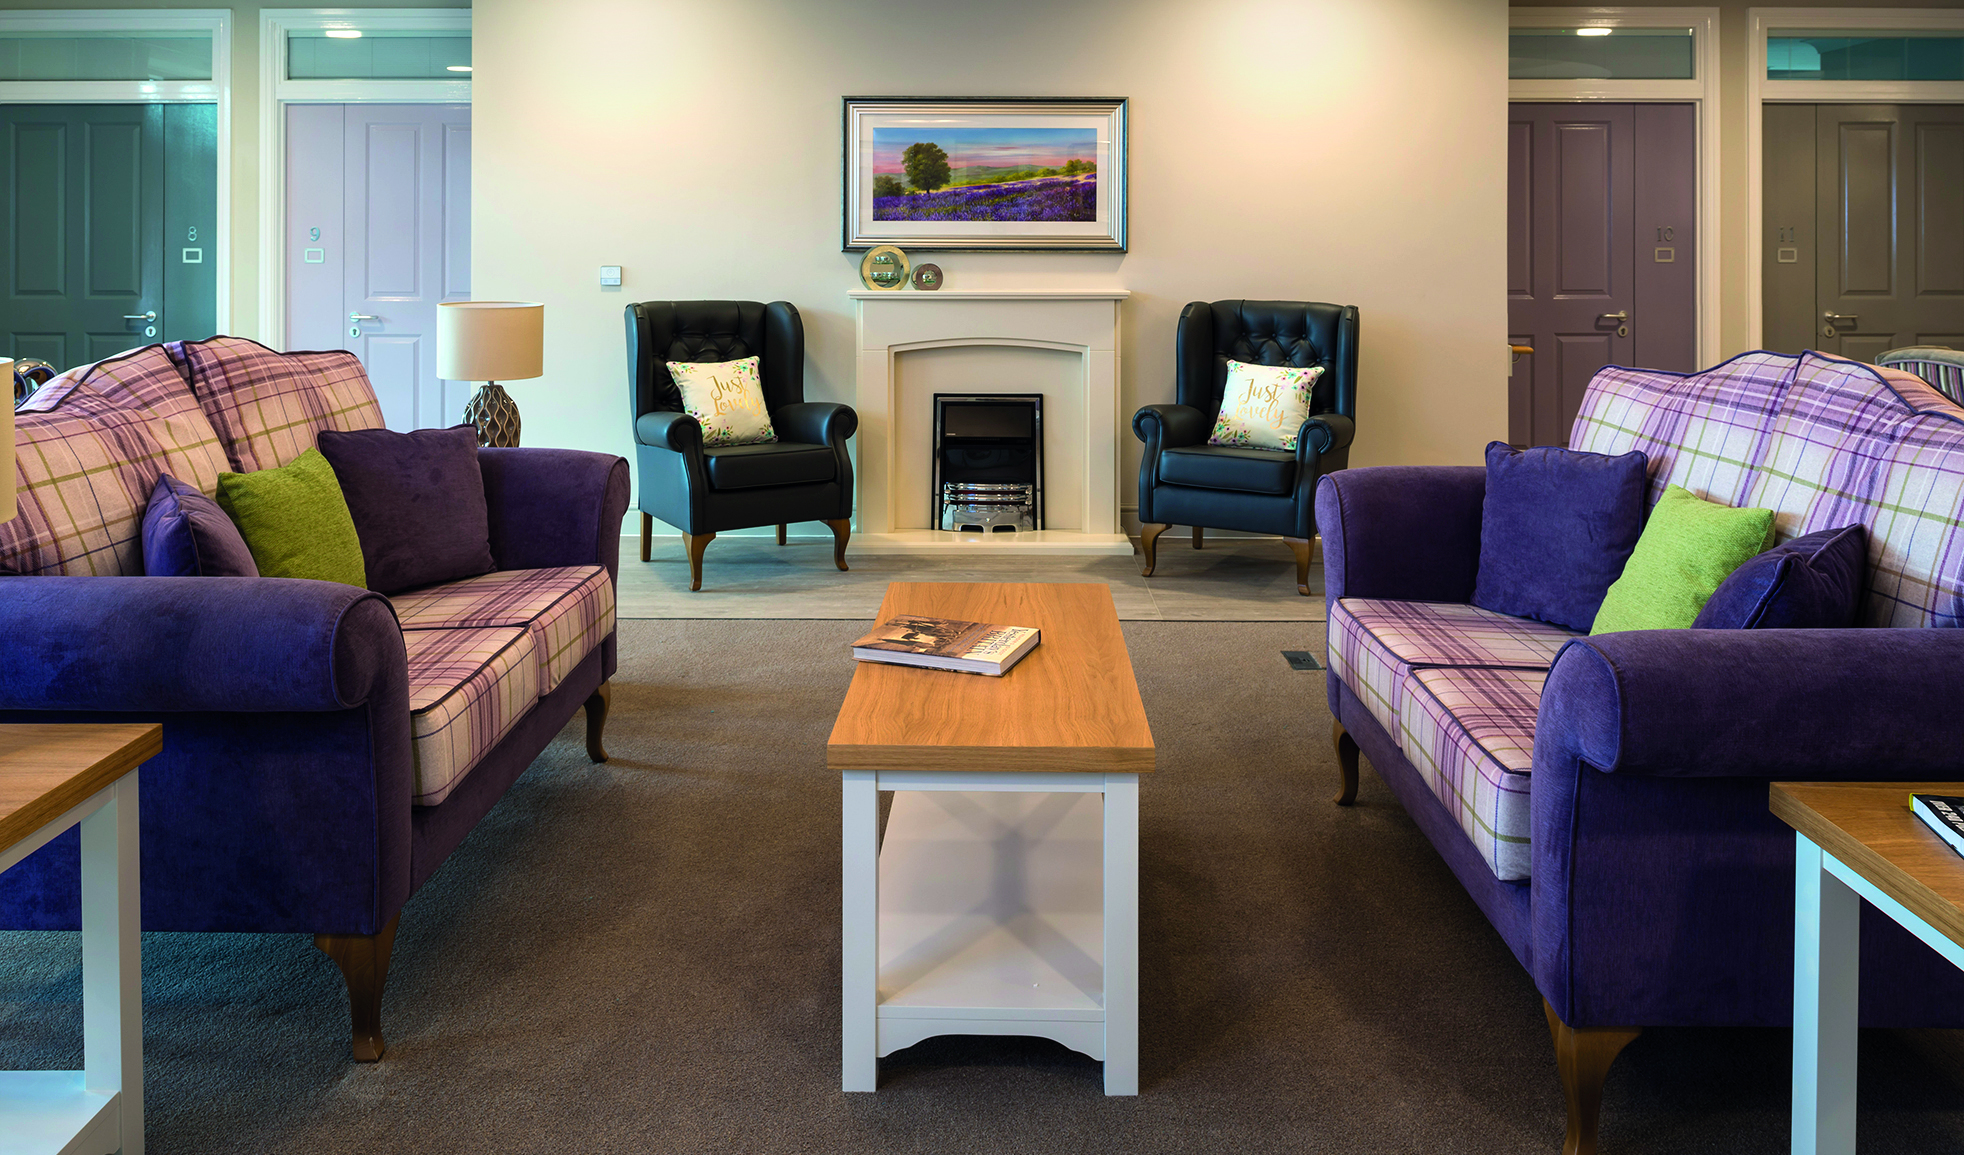 Chairs and table in a lounge area in the Charterhouse Care Home